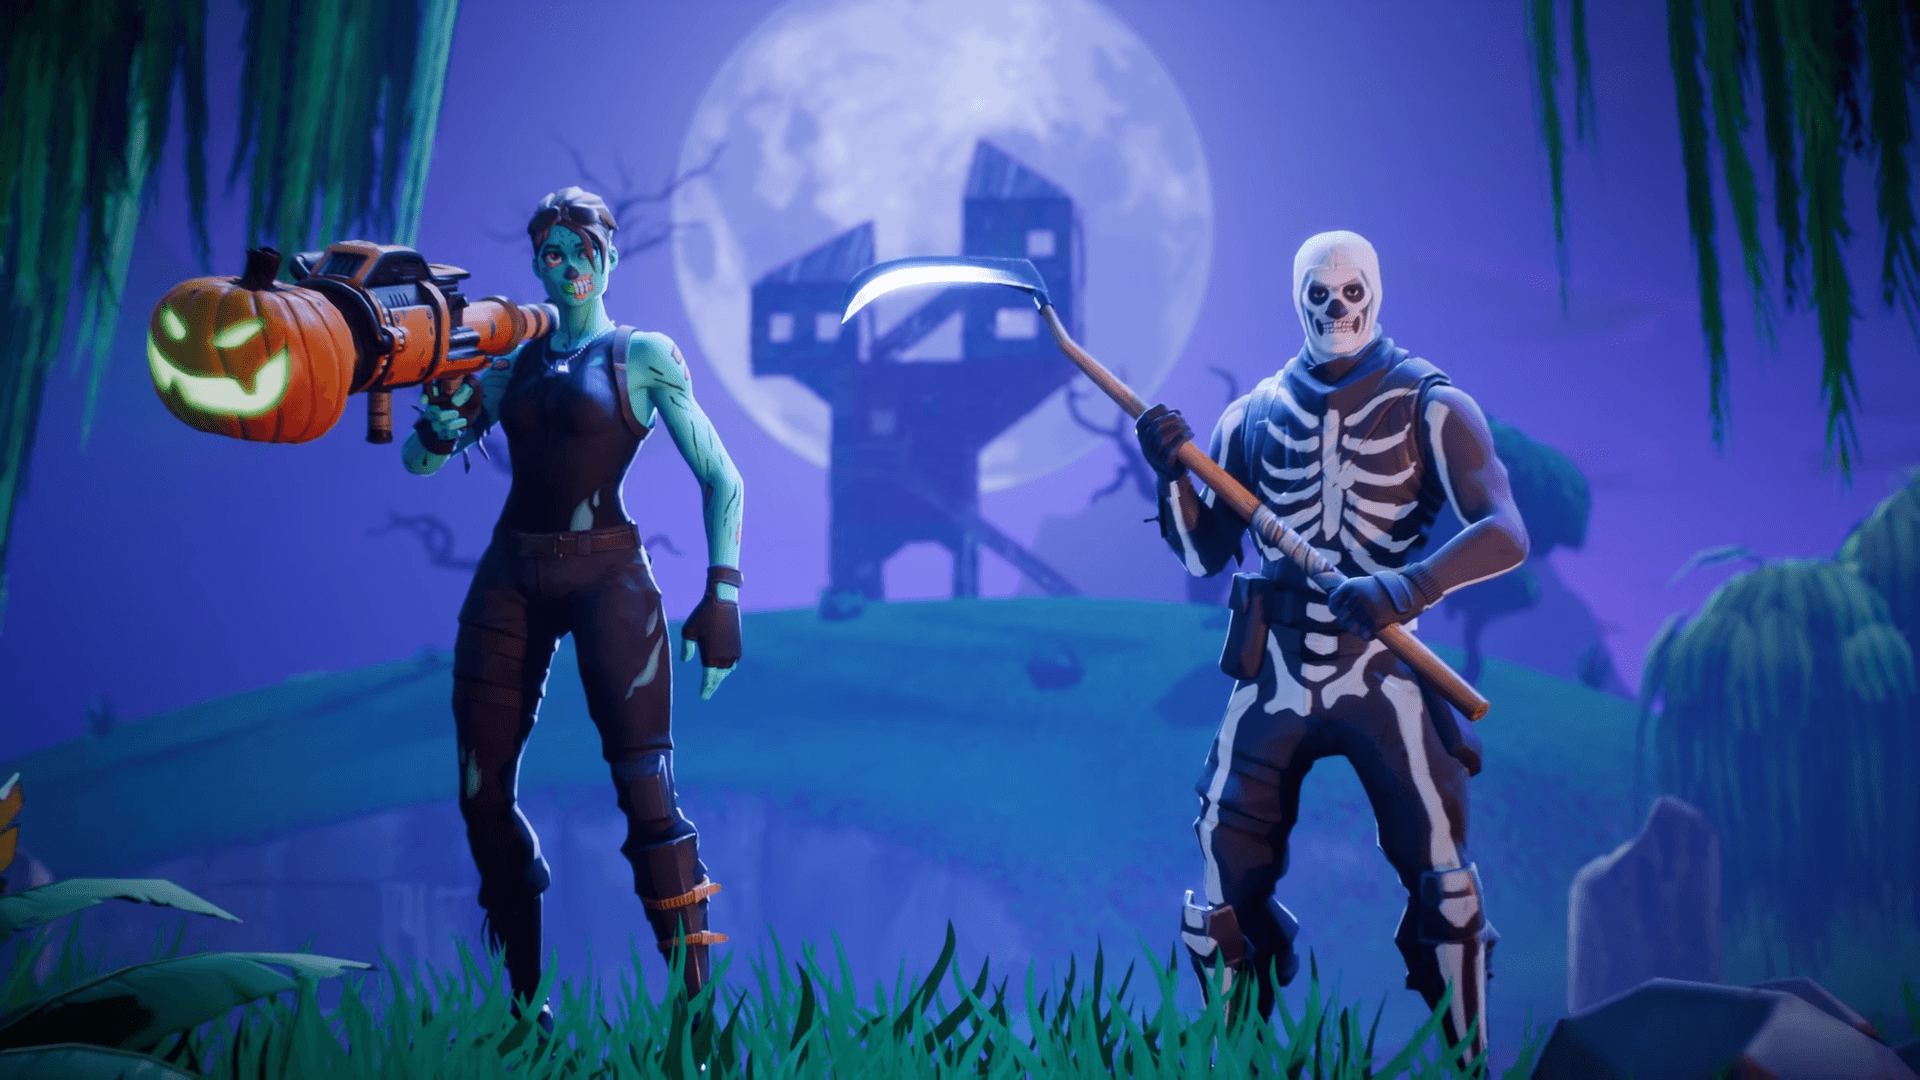 Cool Fortnite Wallpapers   Top Cool Fortnite Backgrounds 1920x1080